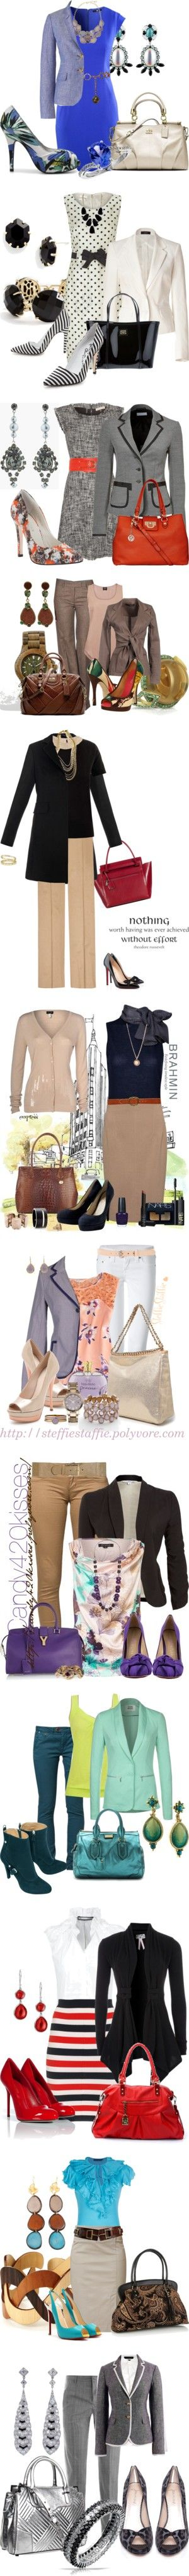 """""""work Wear 3"""" by coromitas on Polyvore"""